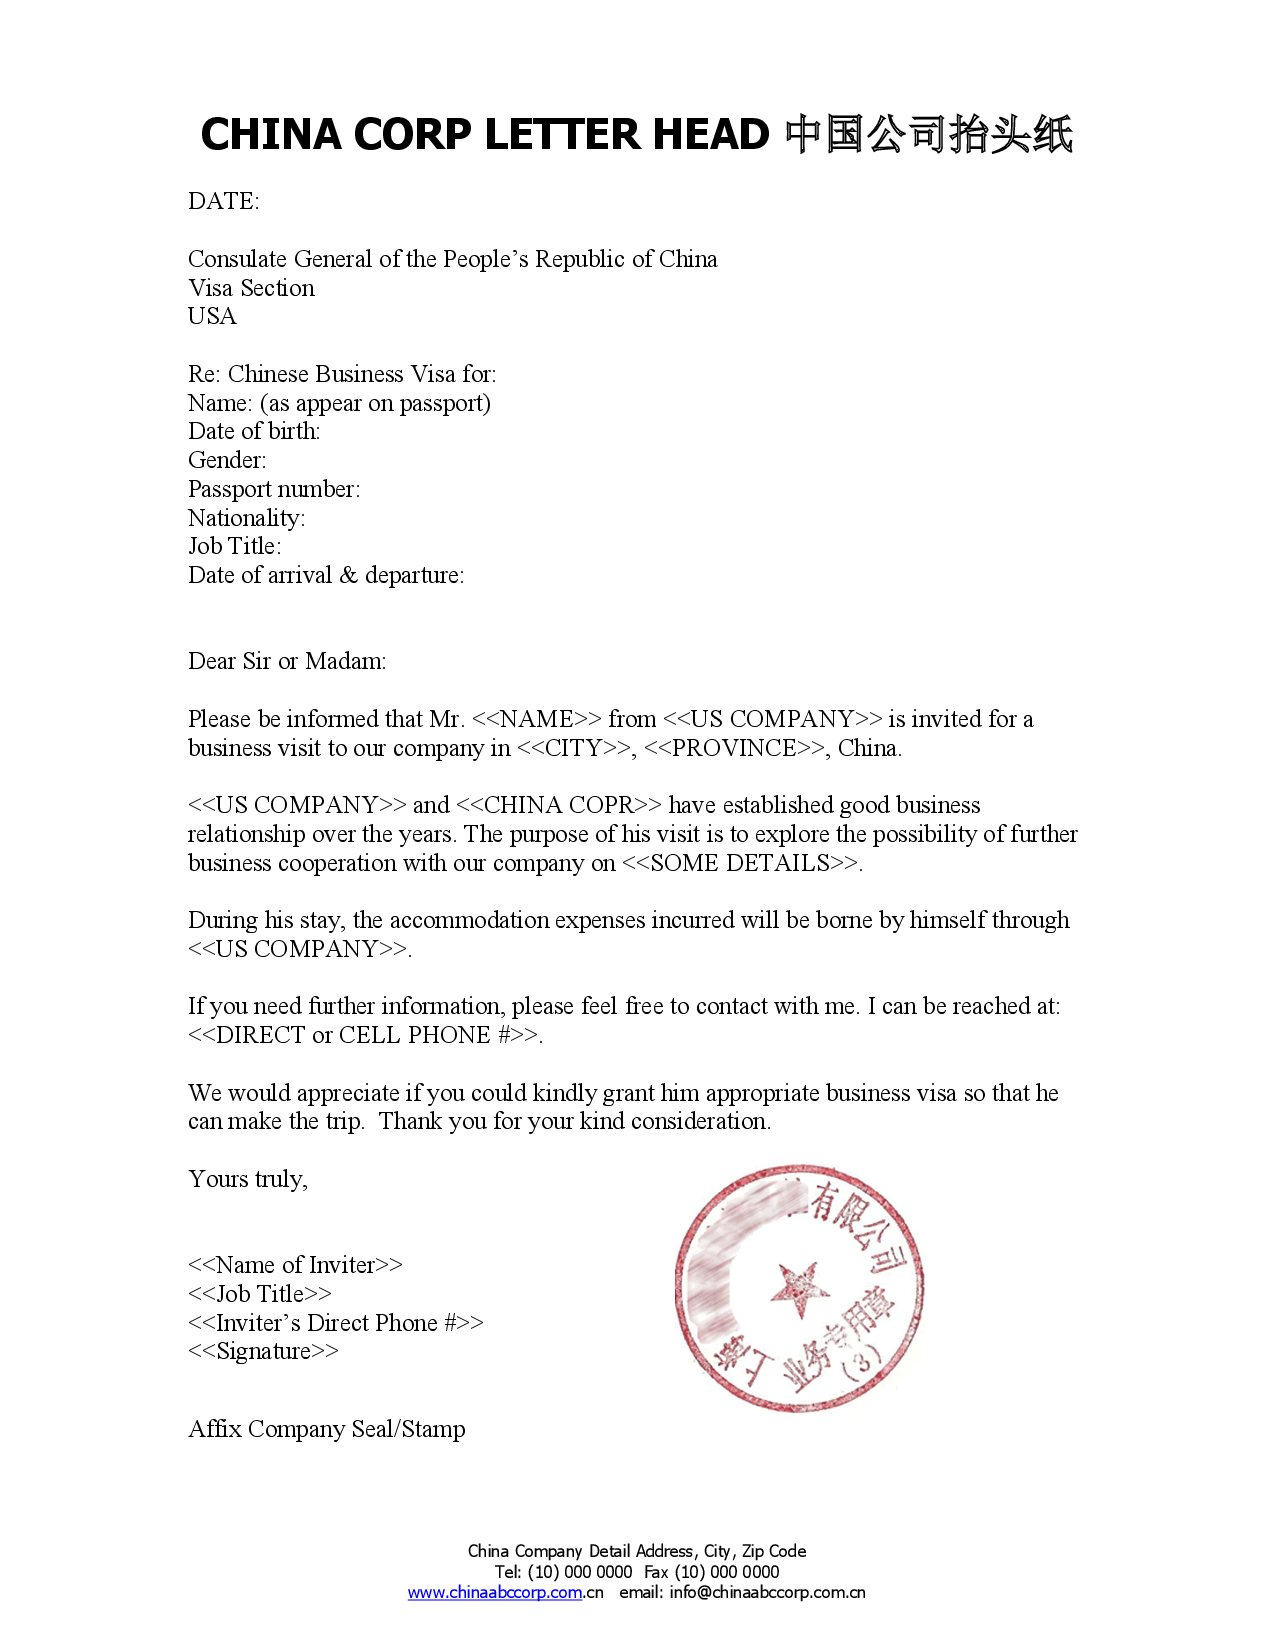 Format invitation letter for business visa to china lettervisa format invitation letter for business visa to china lettervisa invitation letter application letter sample thecheapjerseys Image collections